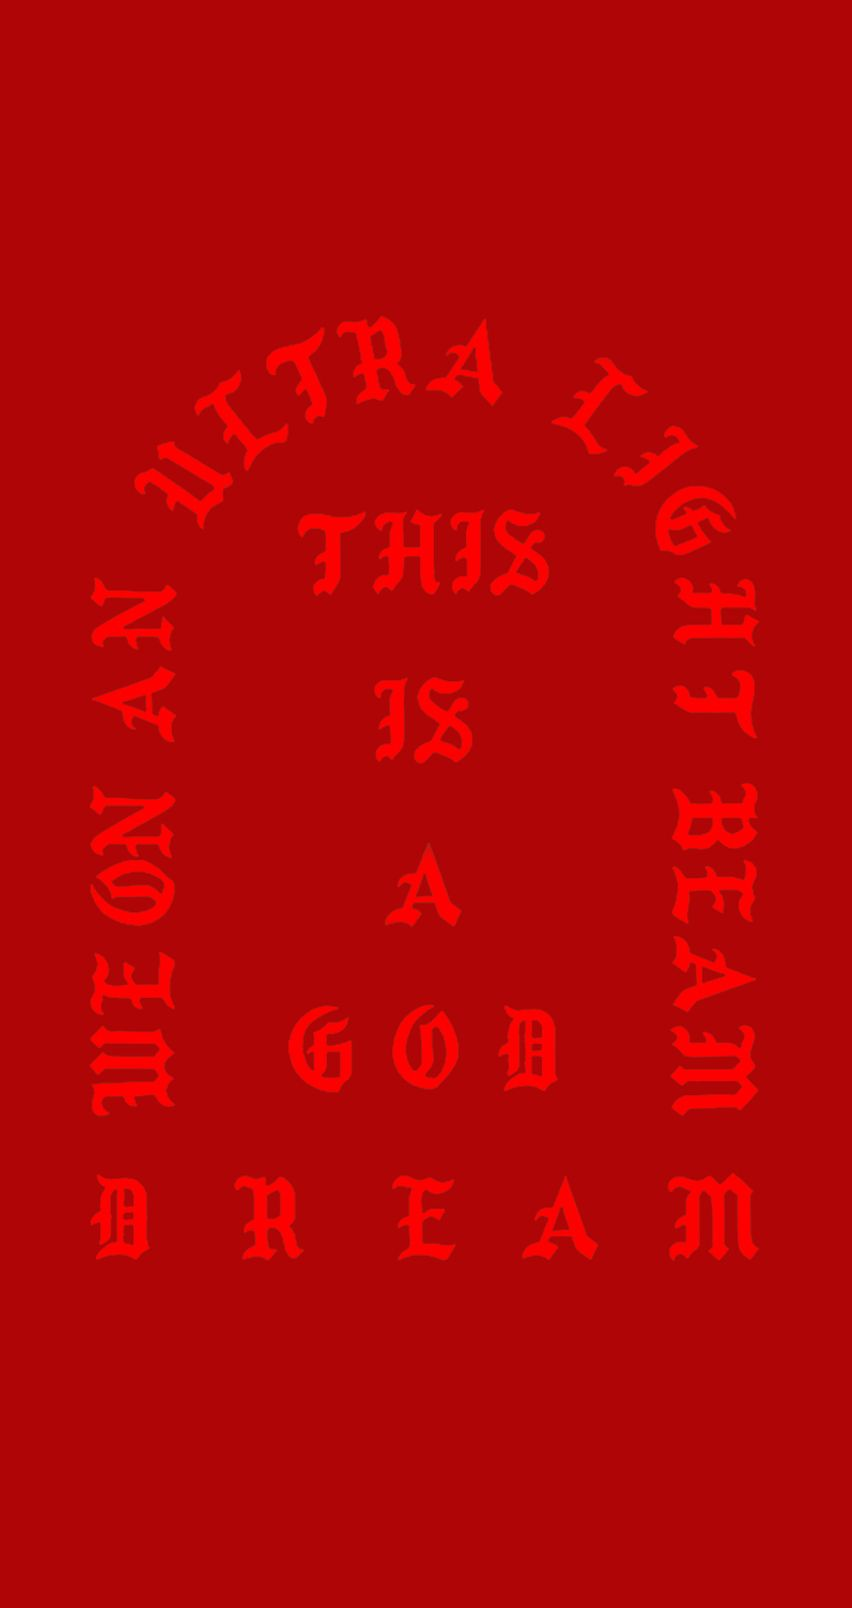 Kanye west iphone wallpaper tumblr - Tlop New Merch Wallpapers Updated Kanye West Forum